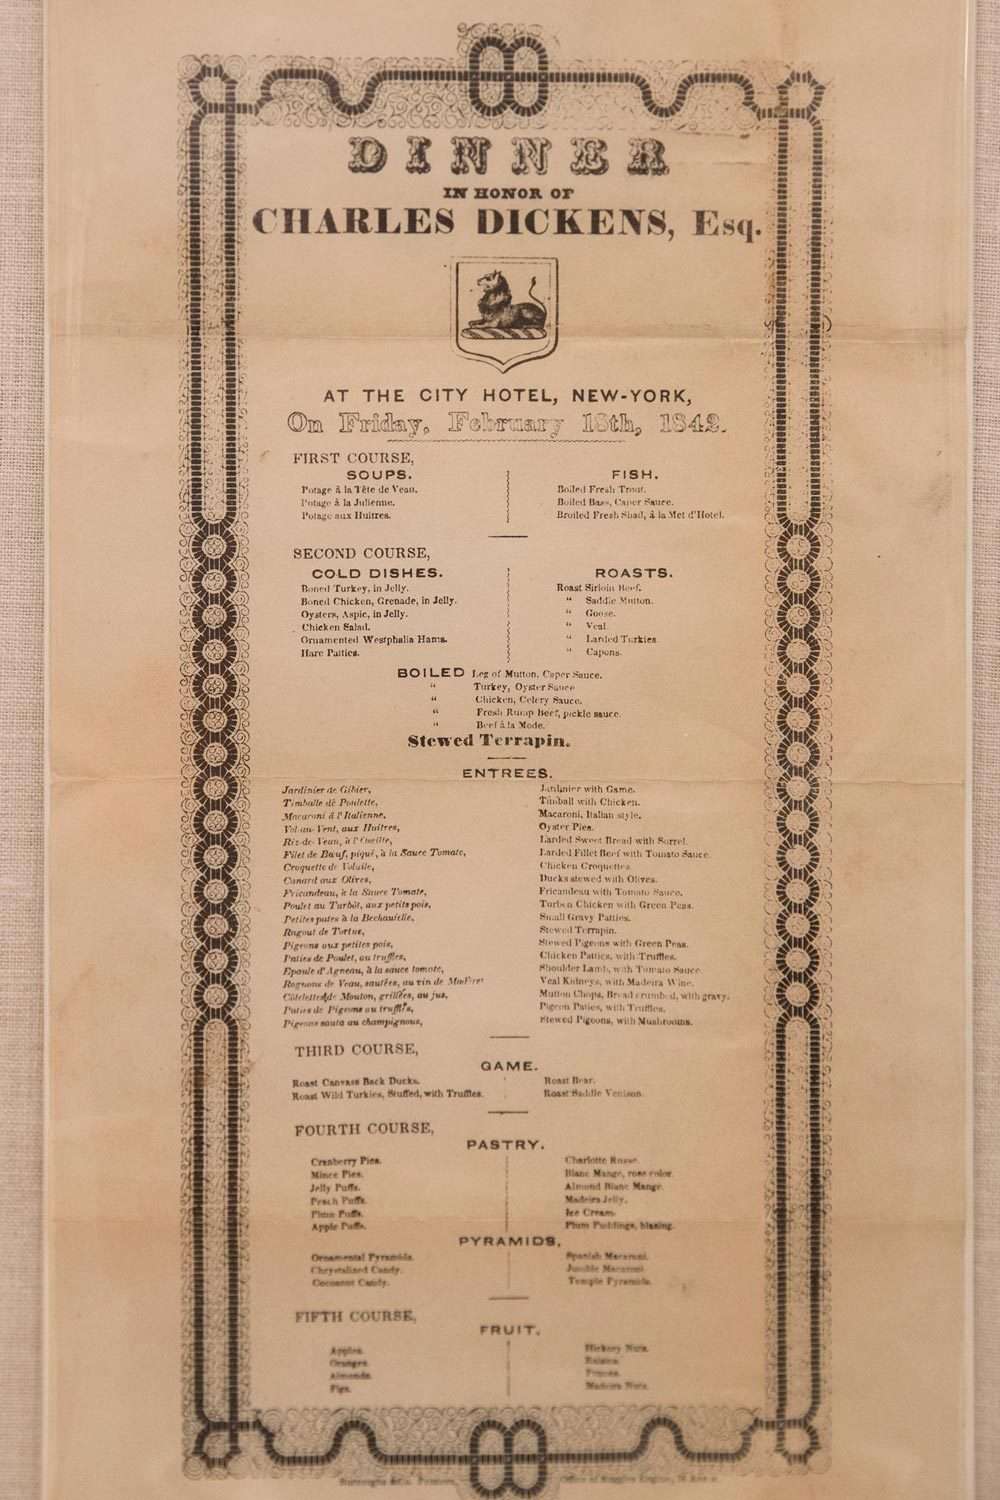 This extensive menu for a dinner honoring Charles Dickens' 1842 tour of America includes stewed pigeons – meaning the passenger pigeon, which was hunted and eaten into extinction.